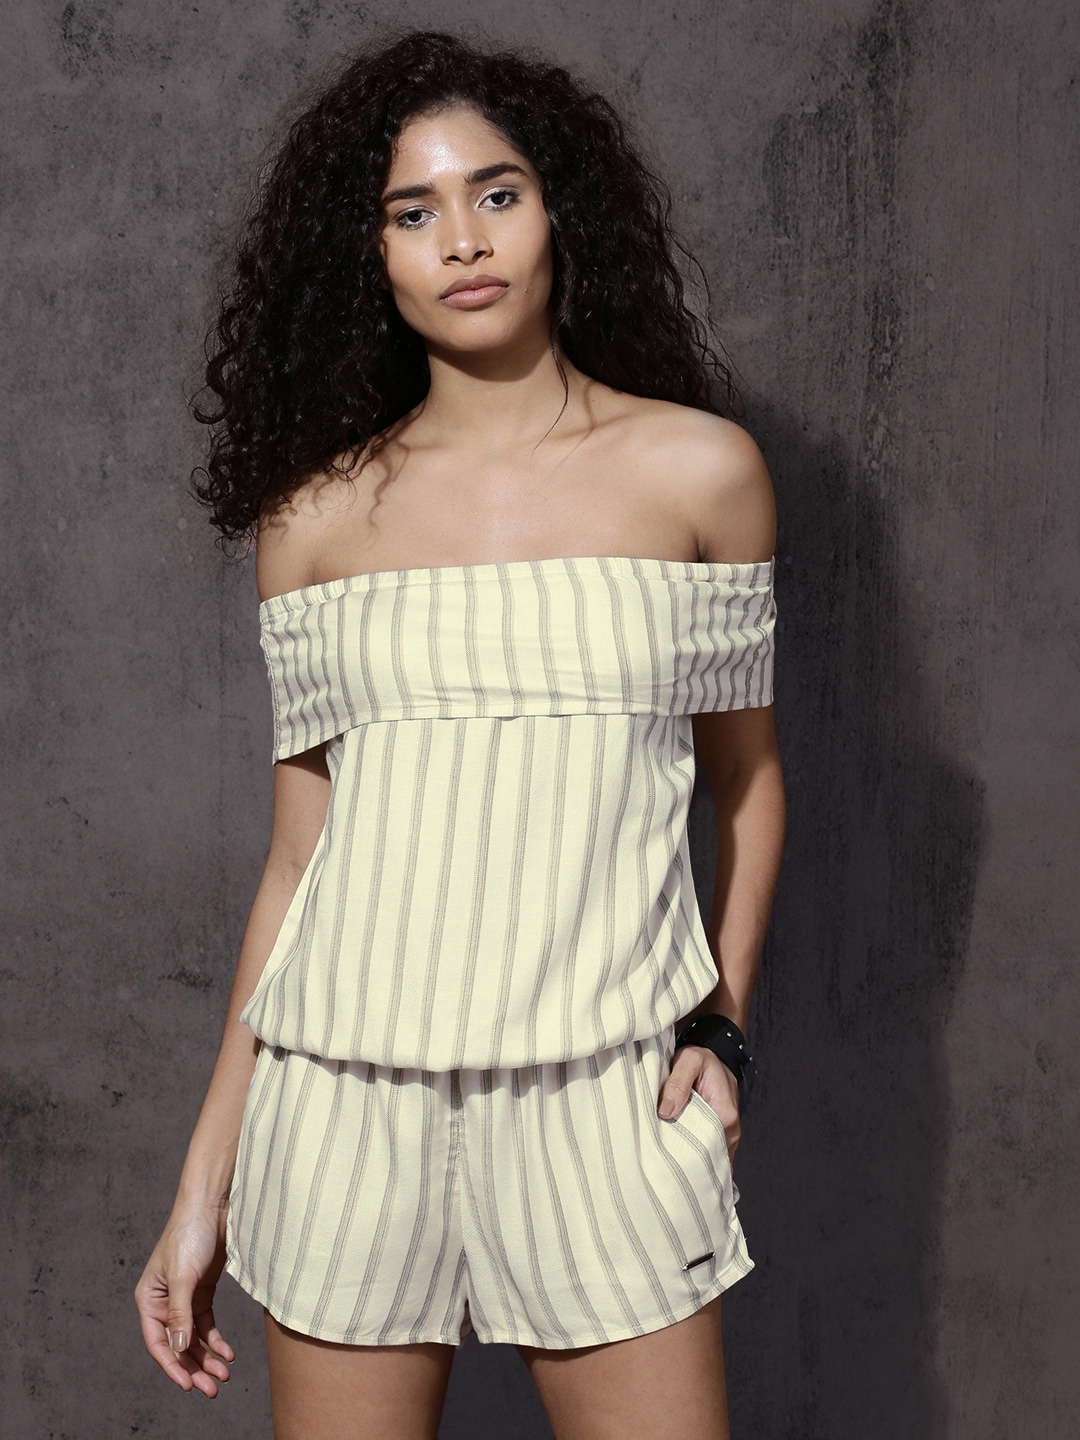 aa211130af Striped Jumpsuit - Buy Striped Jumpsuit online in India